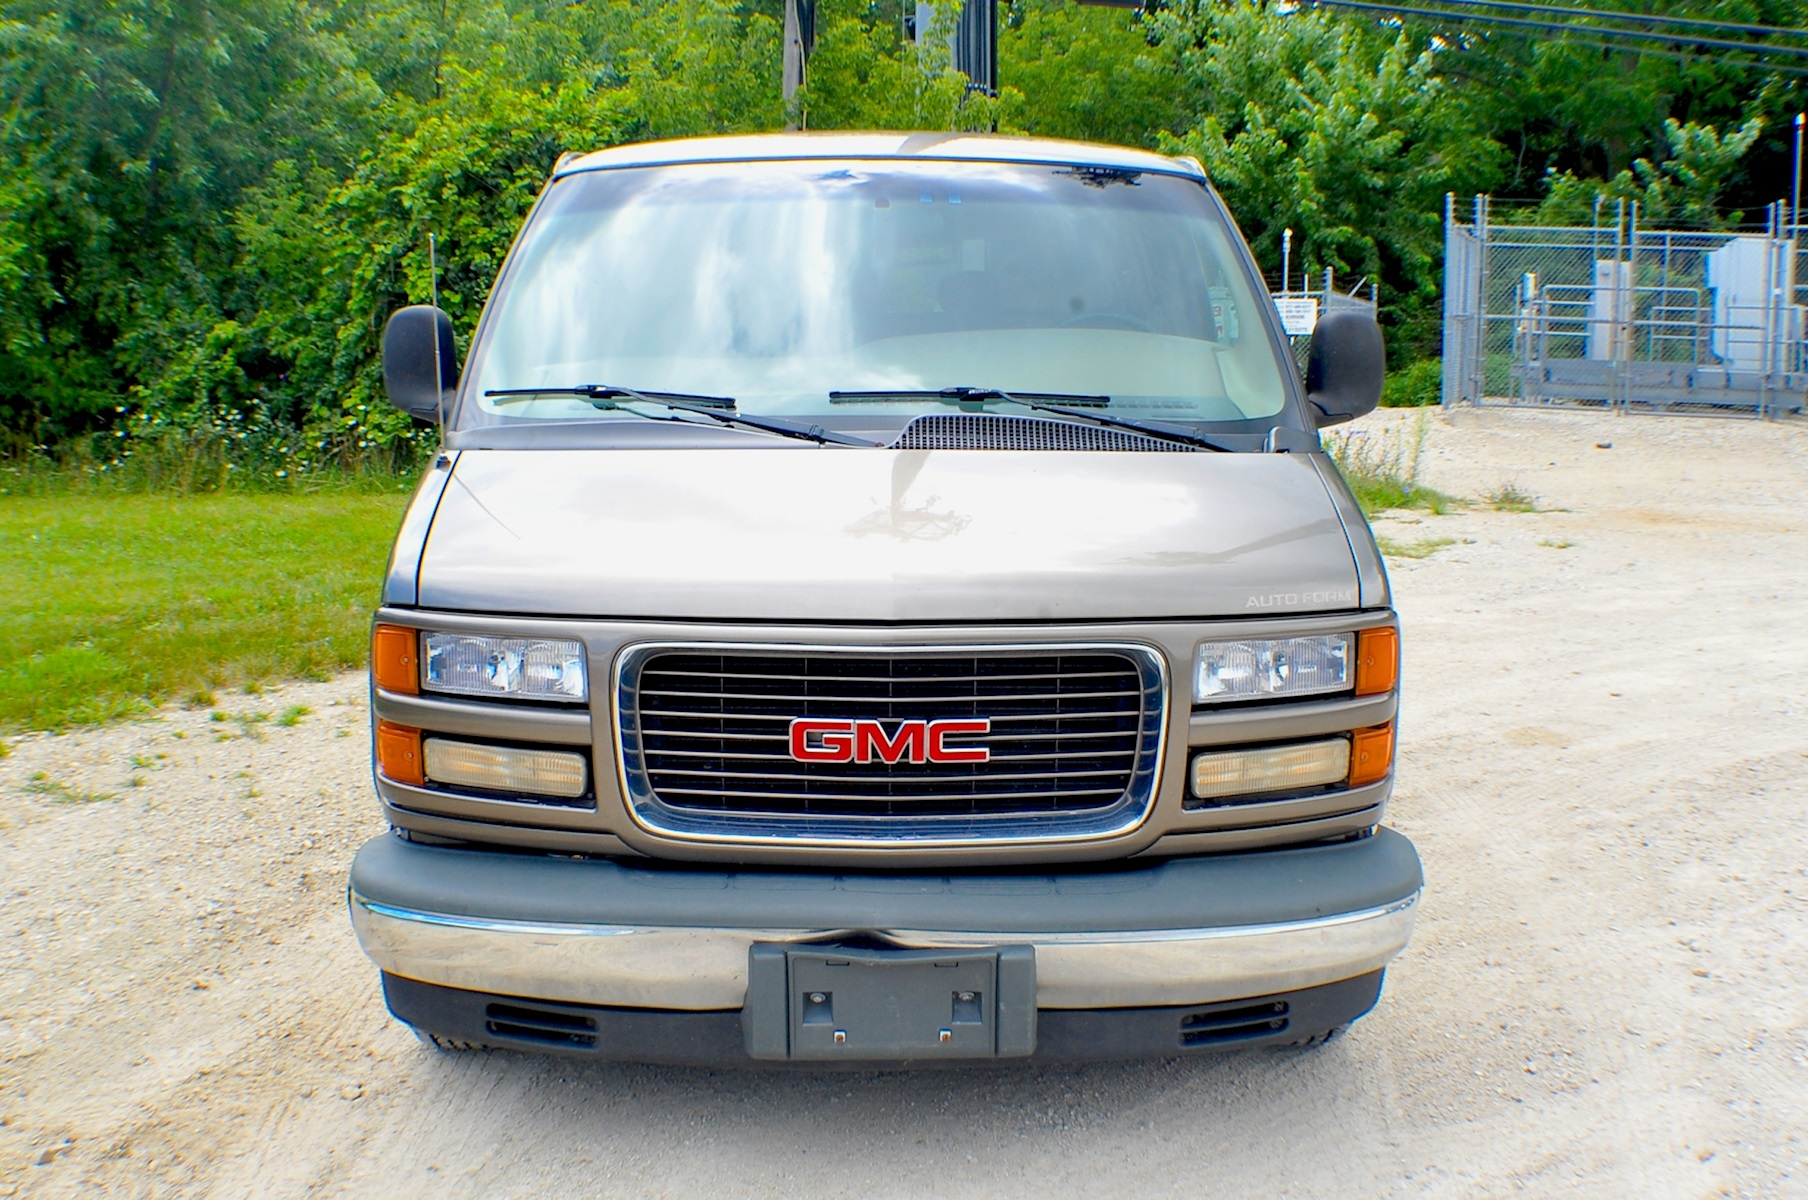 2000 GMC Savana Pewter 1500 Conversion Van Sale Gurnee Kenosha Mchenry Chicago Illinois